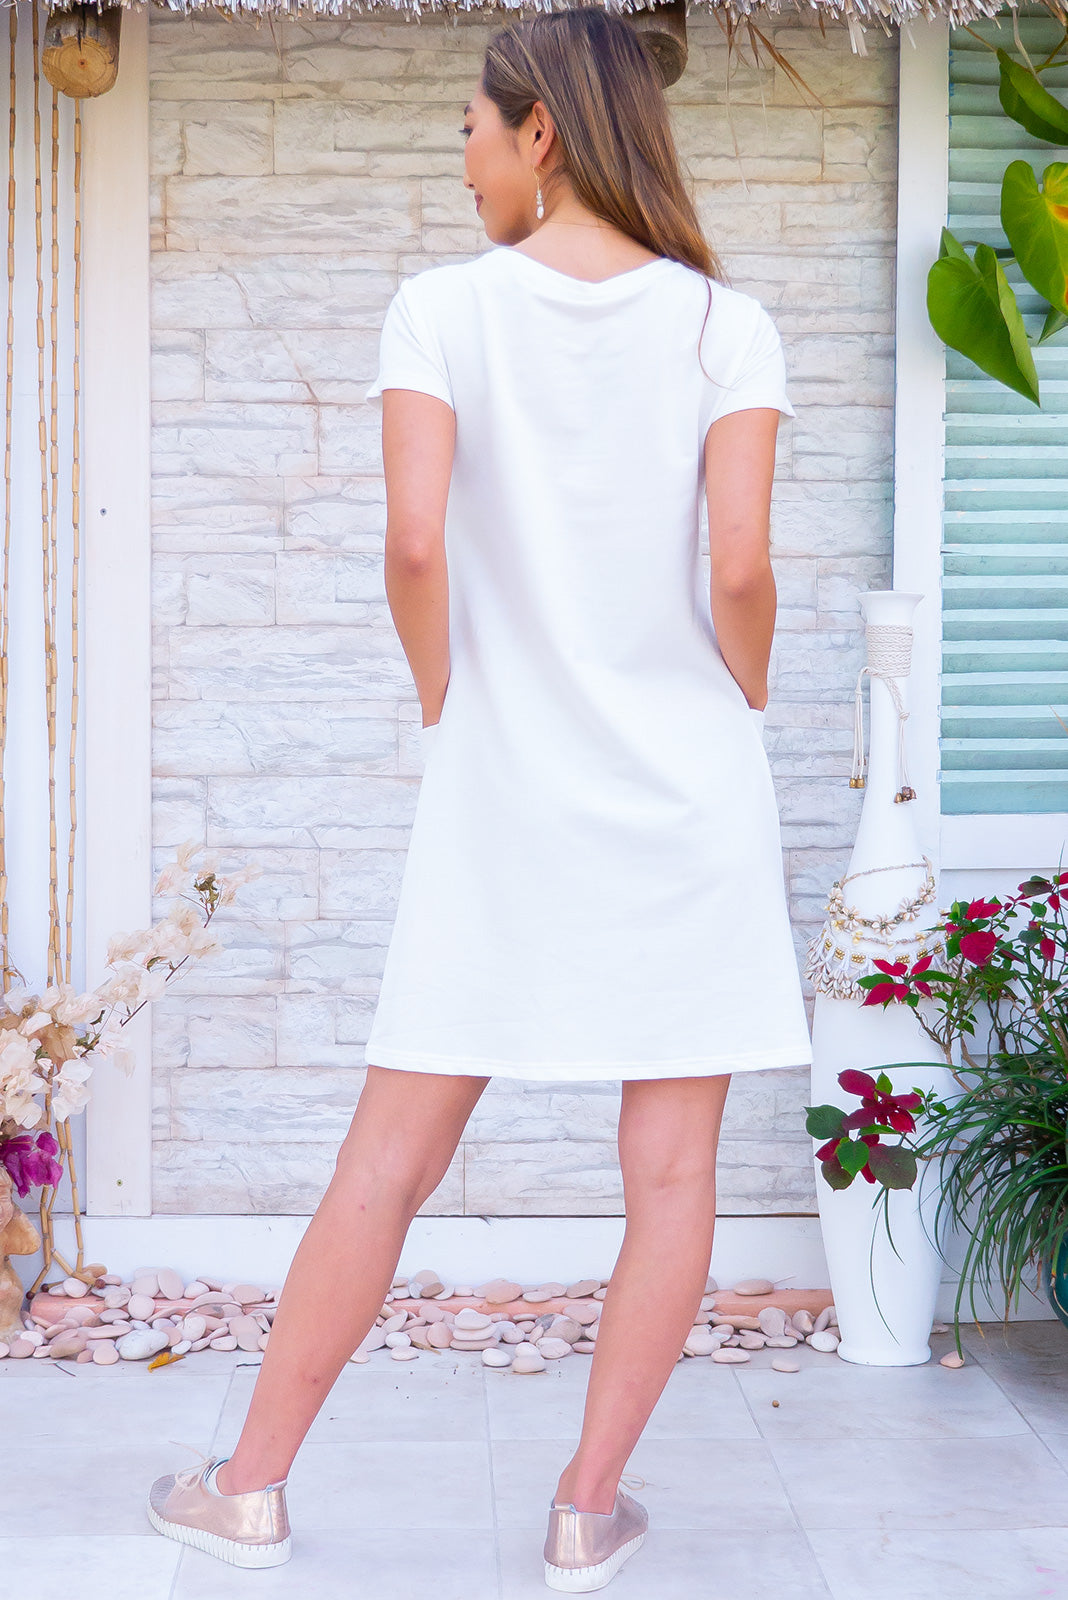 Elsa Pearl White Dress Sports Luxe shift dress in cotton/polyester blend with pockets.